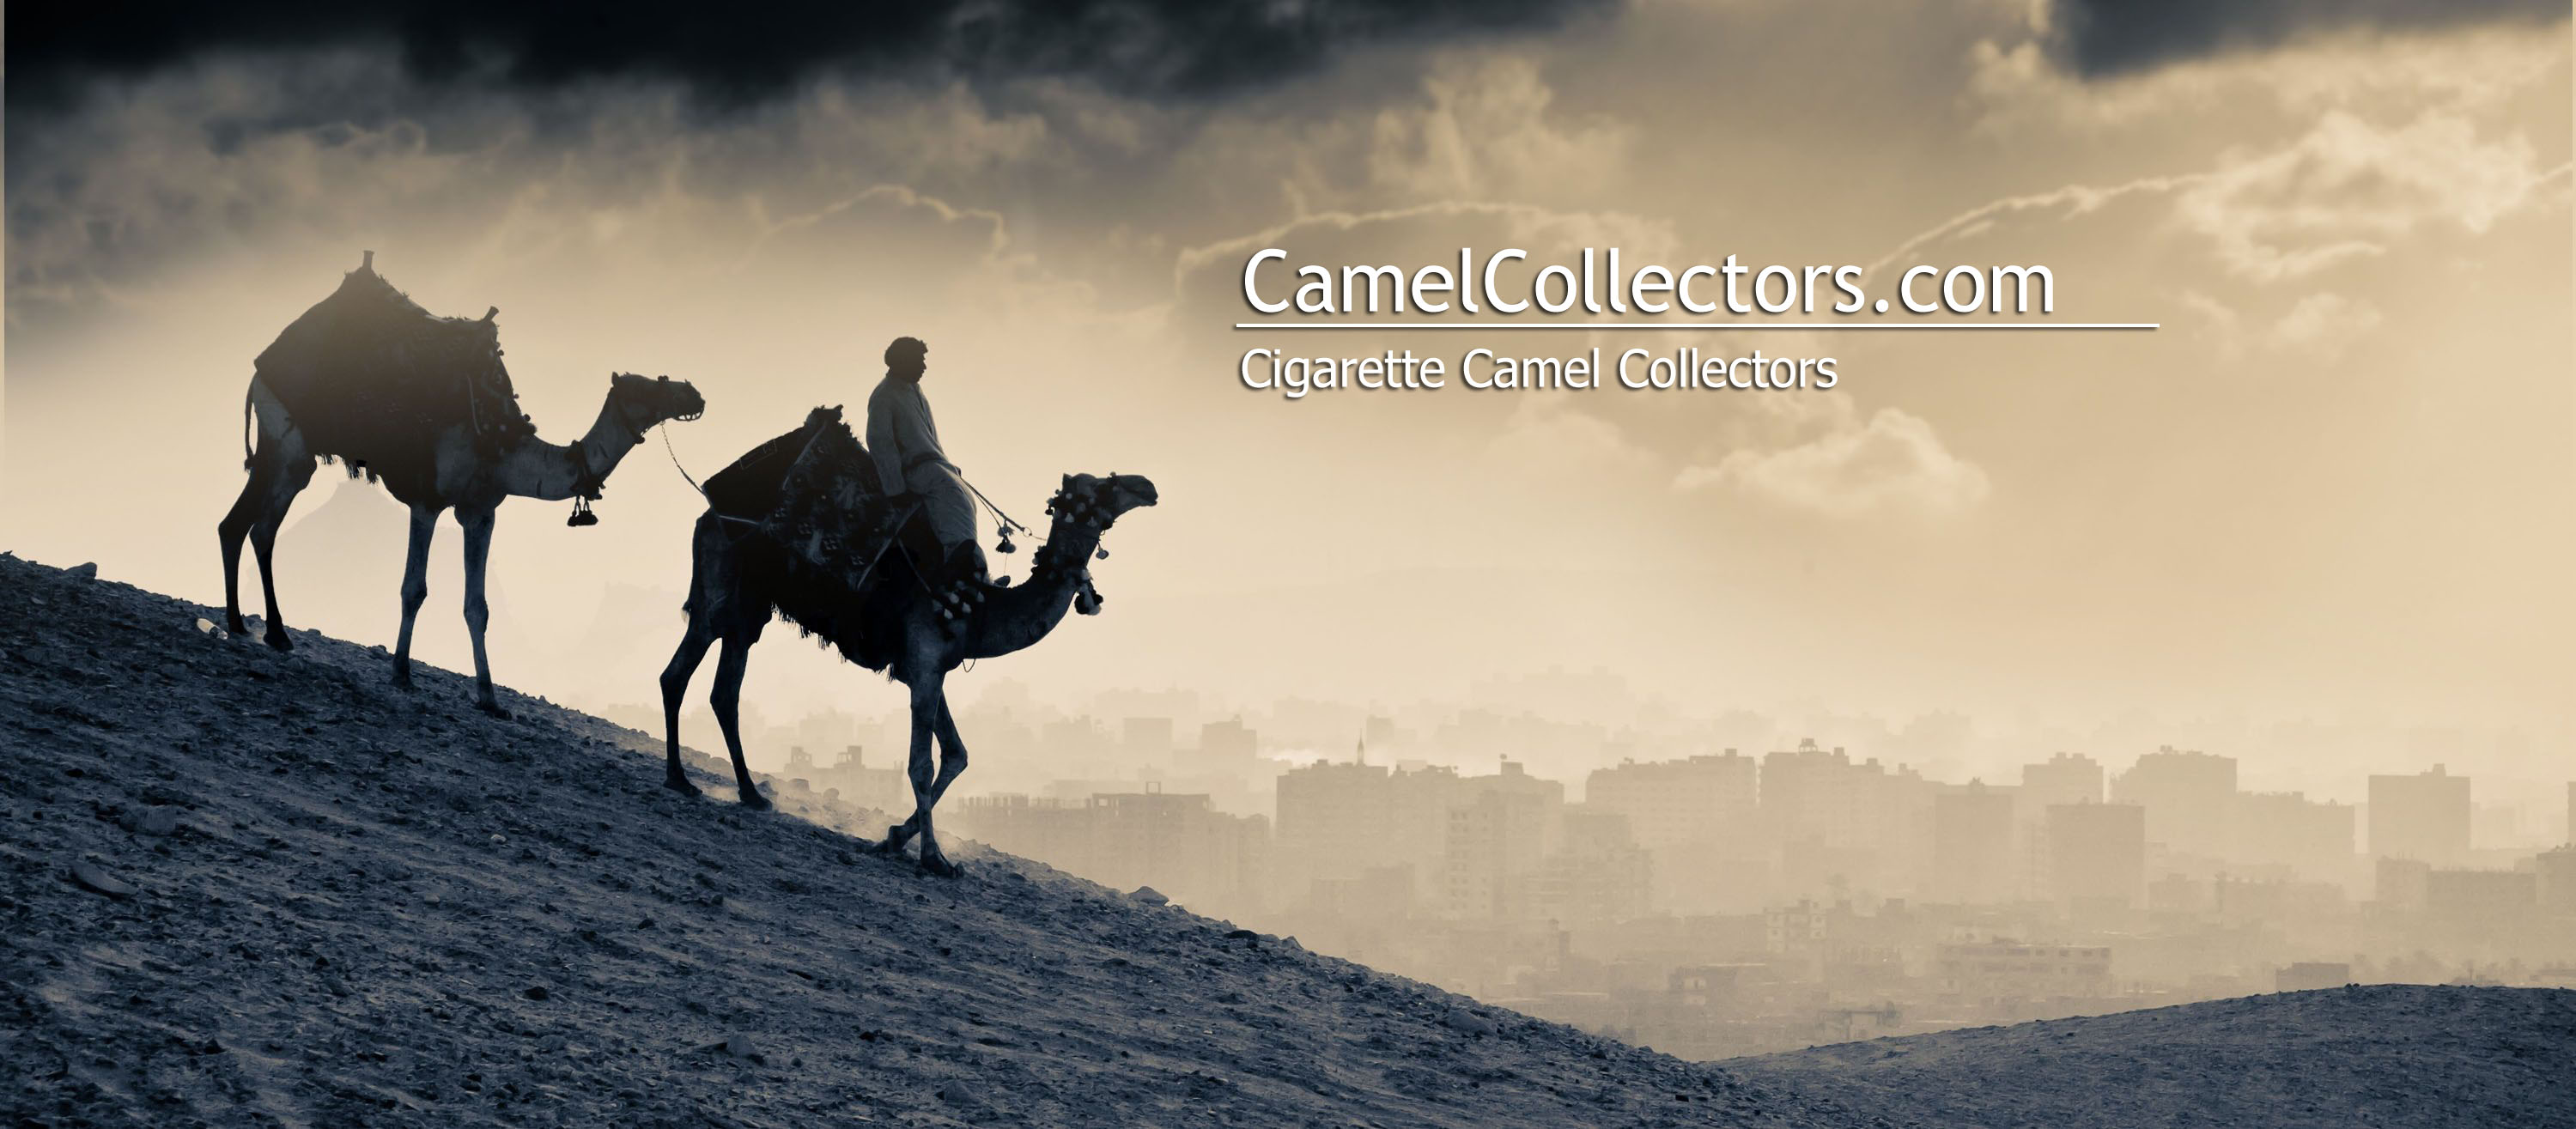 Camel Collector Packs Cigarettes Tobacco Camelcollectors Com